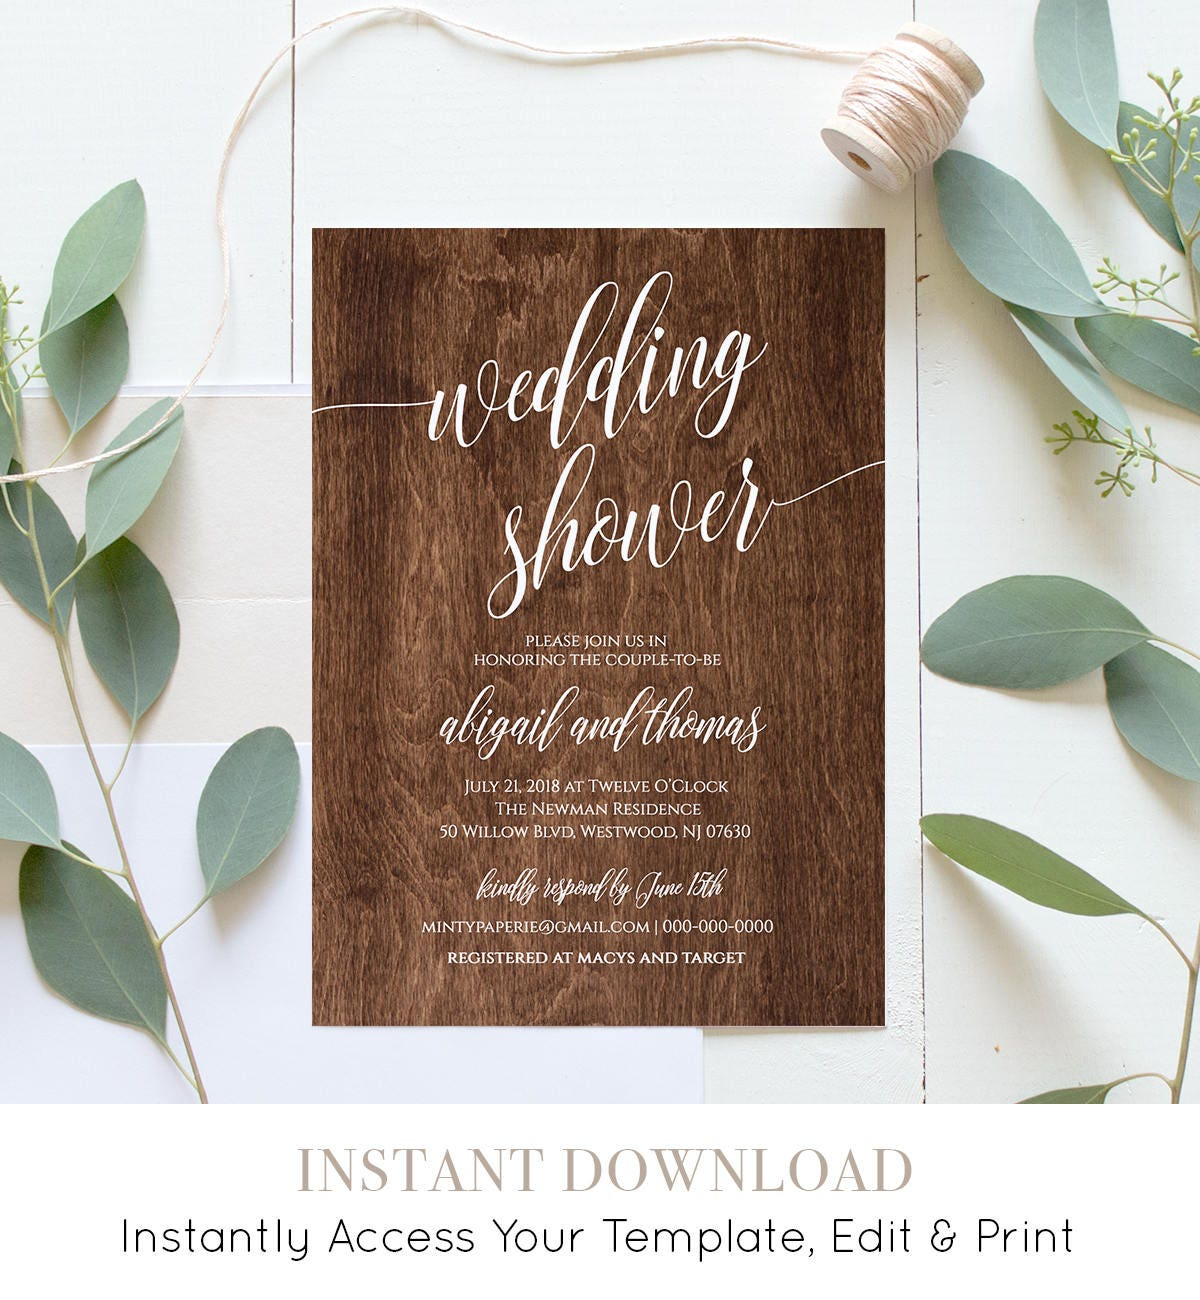 Wedding Shower Template Couples Shower Invitation Instant Download